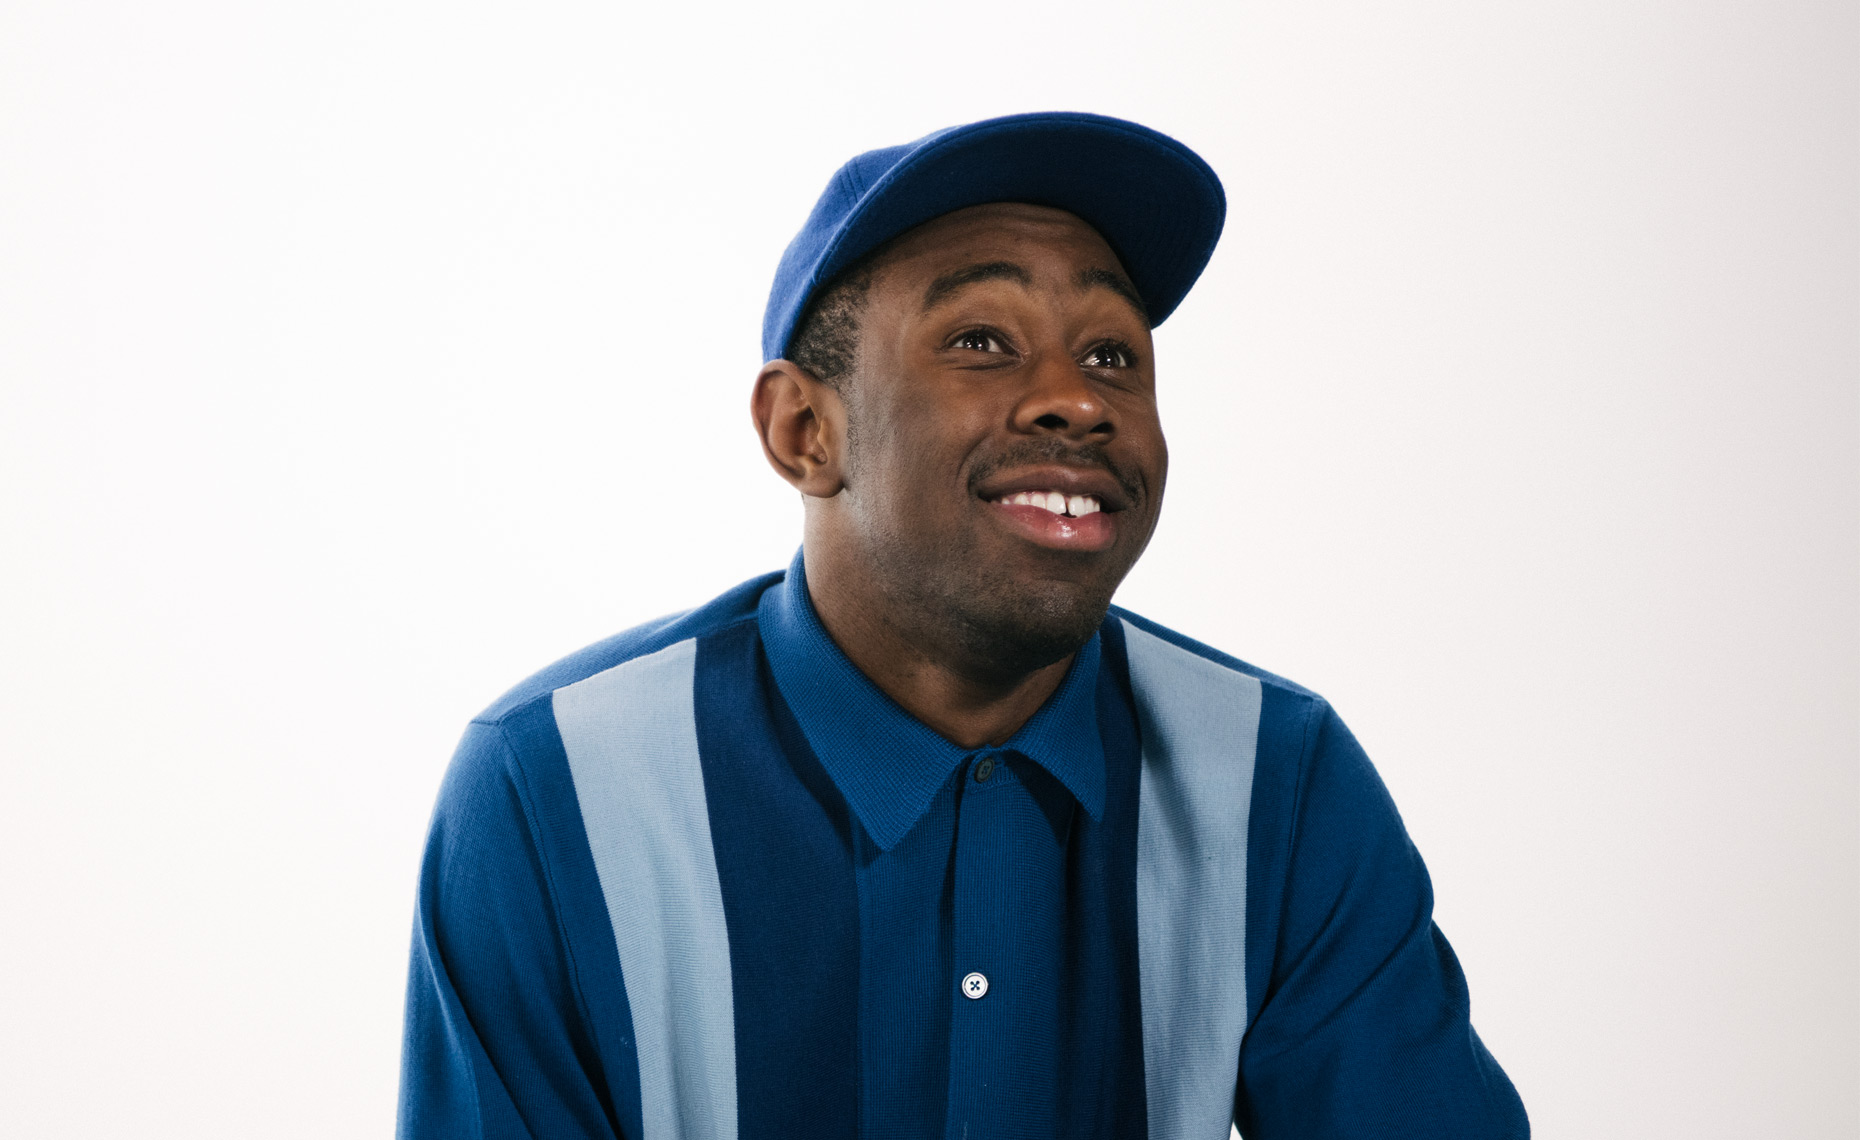 Straley_VICELAND_Tylerthecreator_06